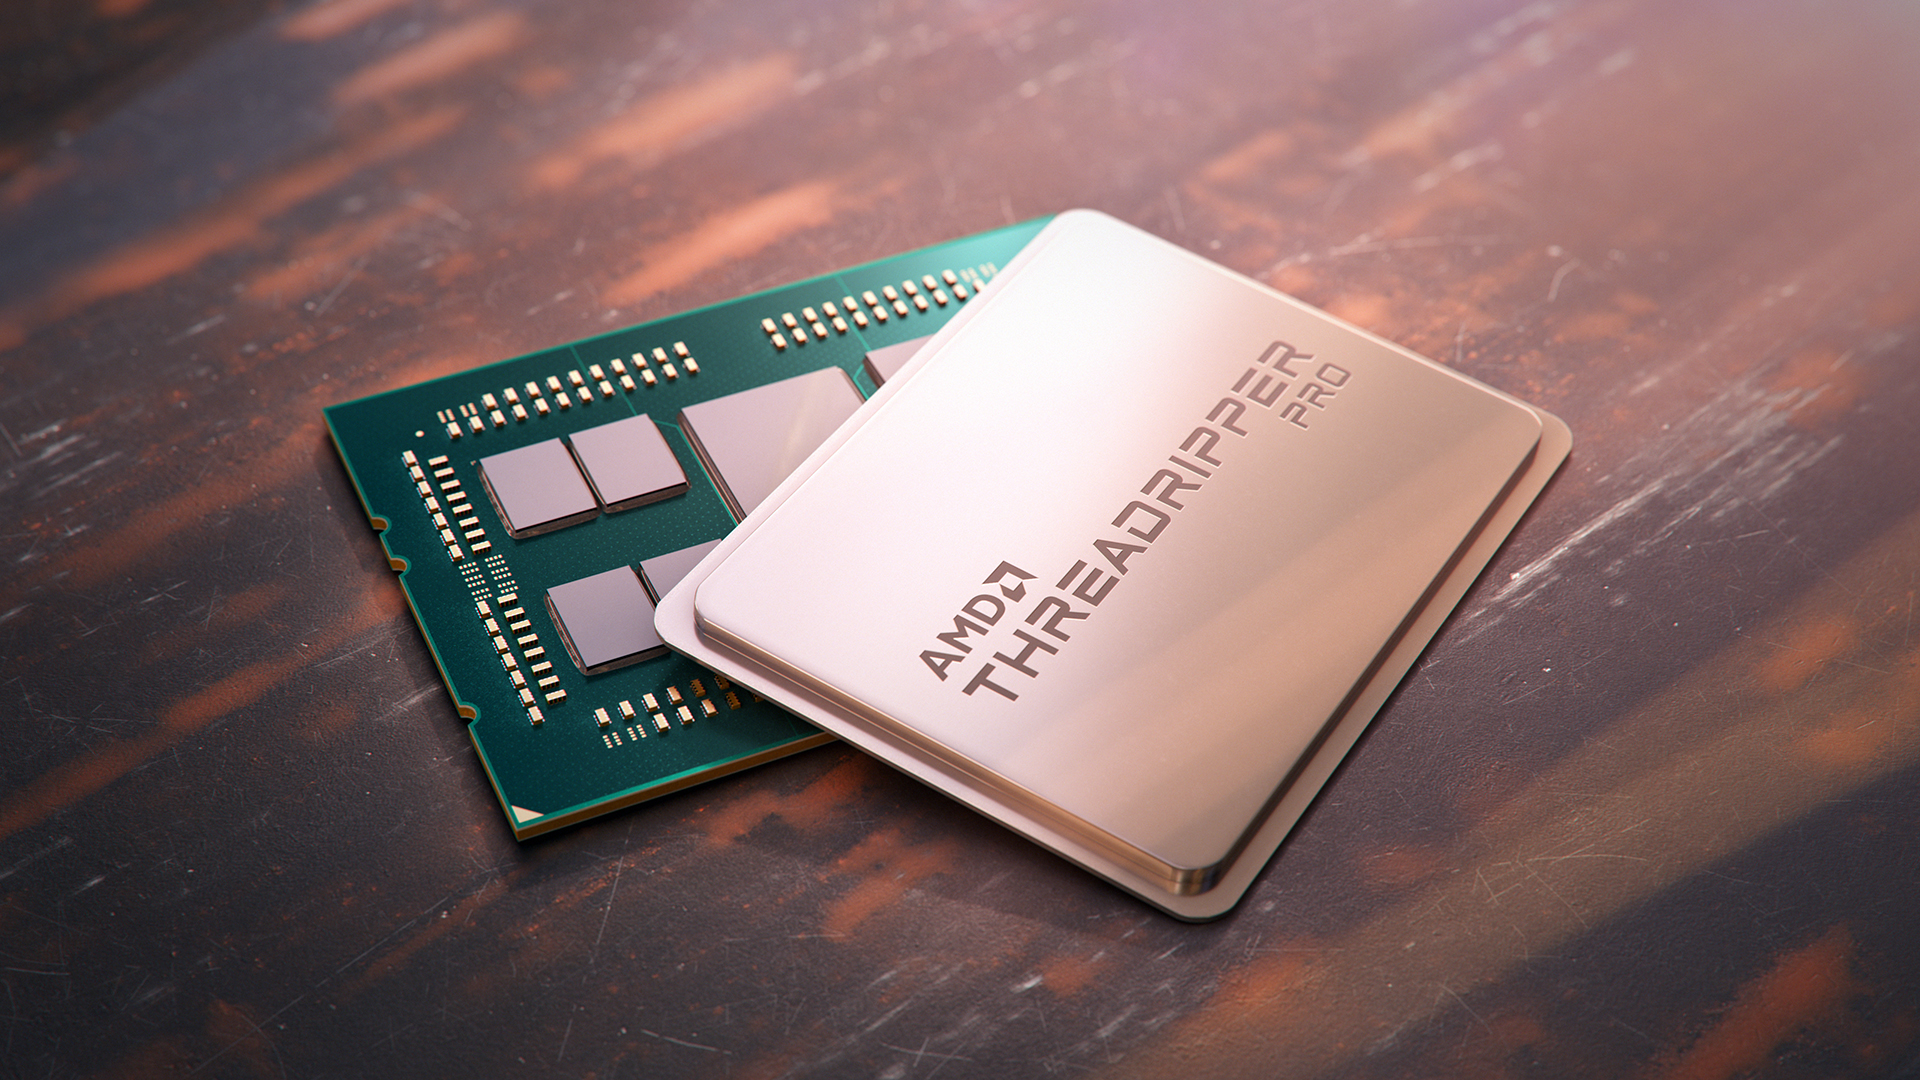 thread ripper pro amd cpu